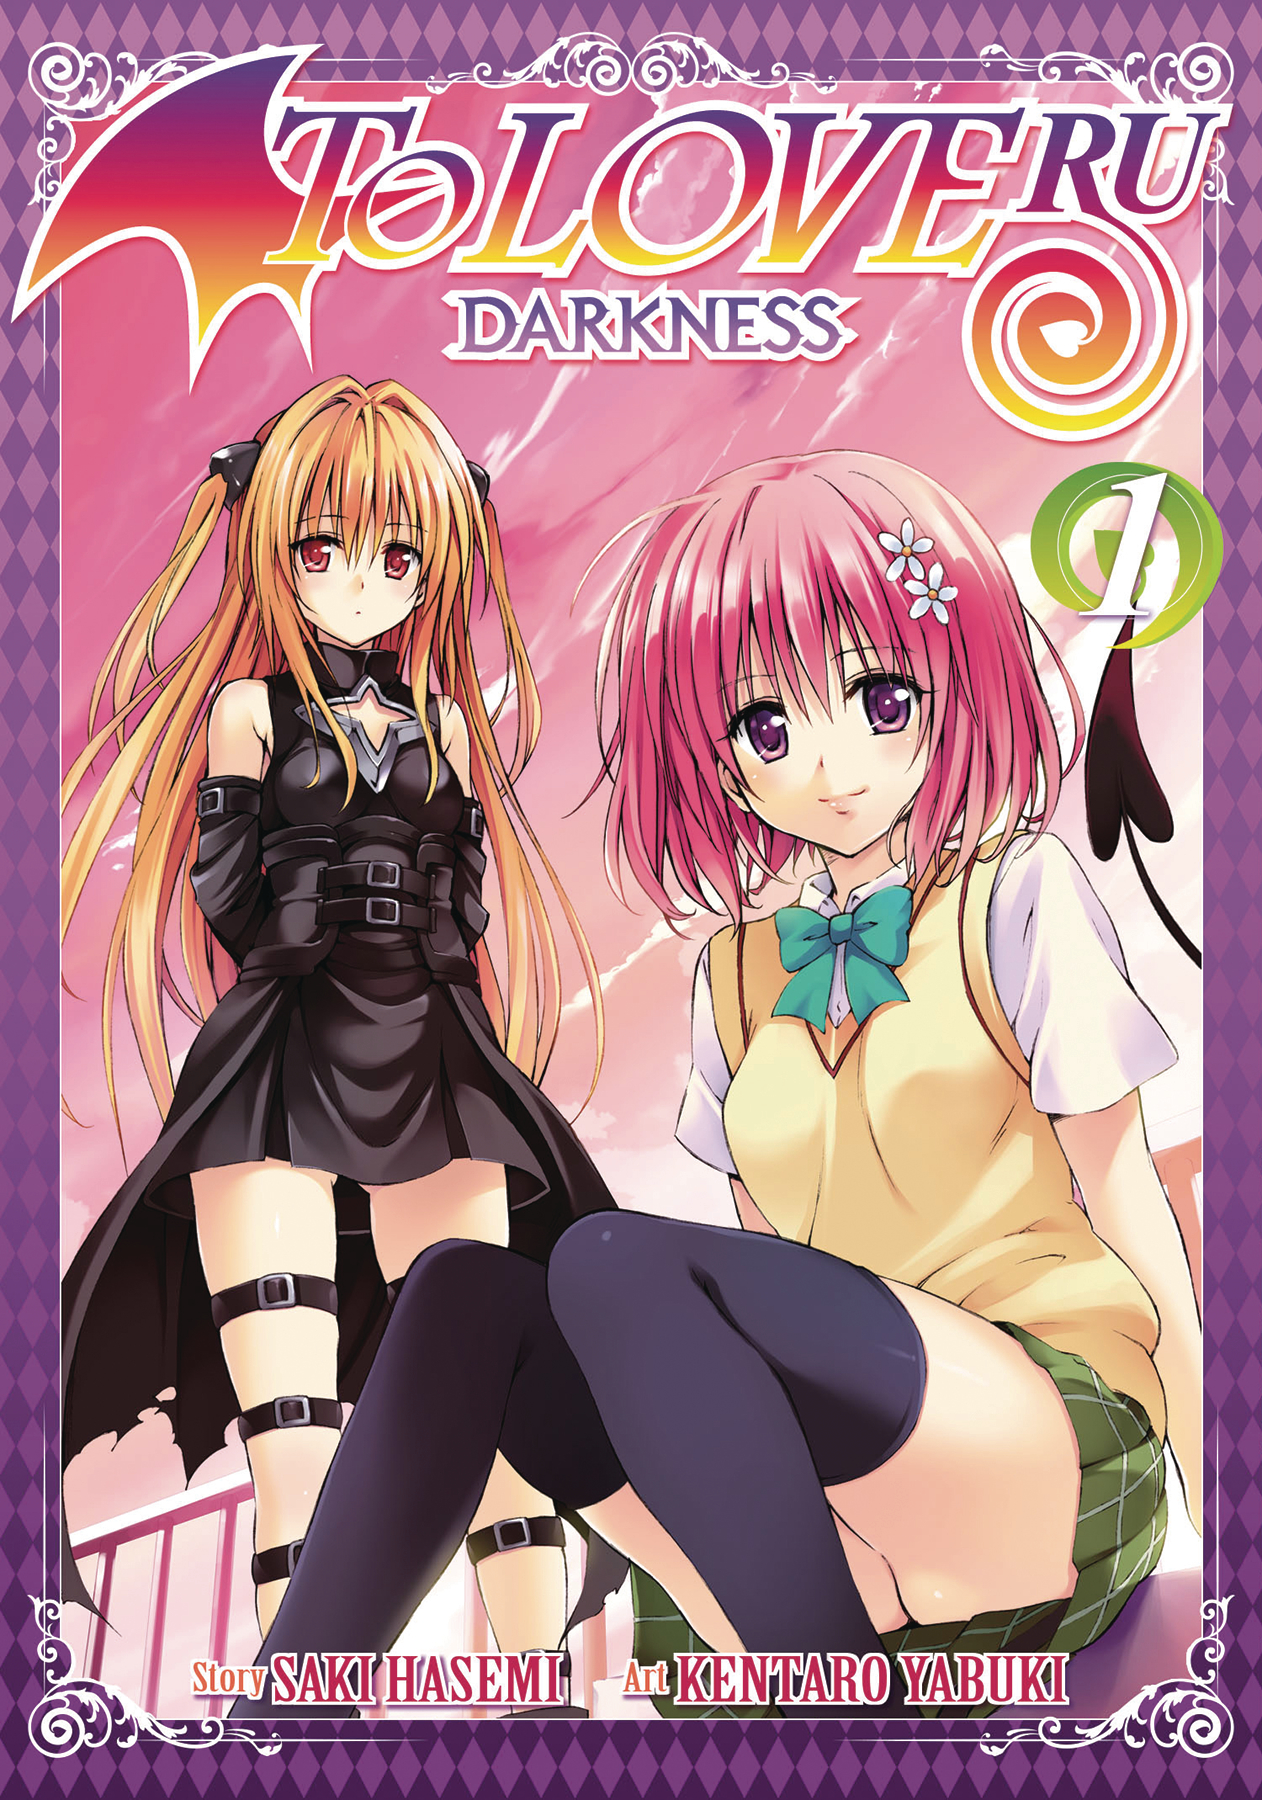 TO LOVE RU DARKNESS GN VOL 01 (OCT171803) (MR)